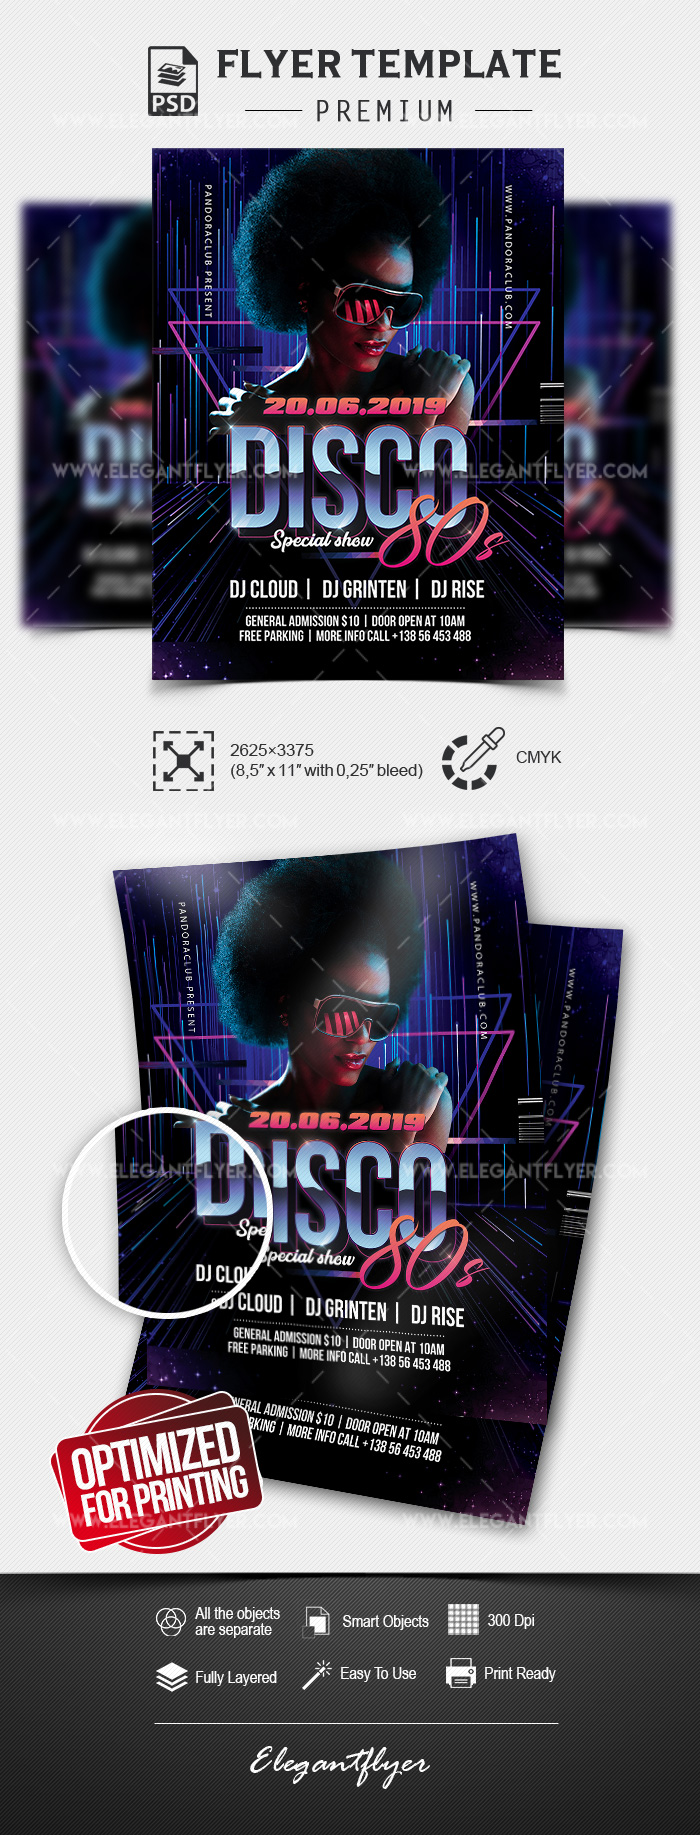 Disco 80s – Premium Flyer Template in PSD